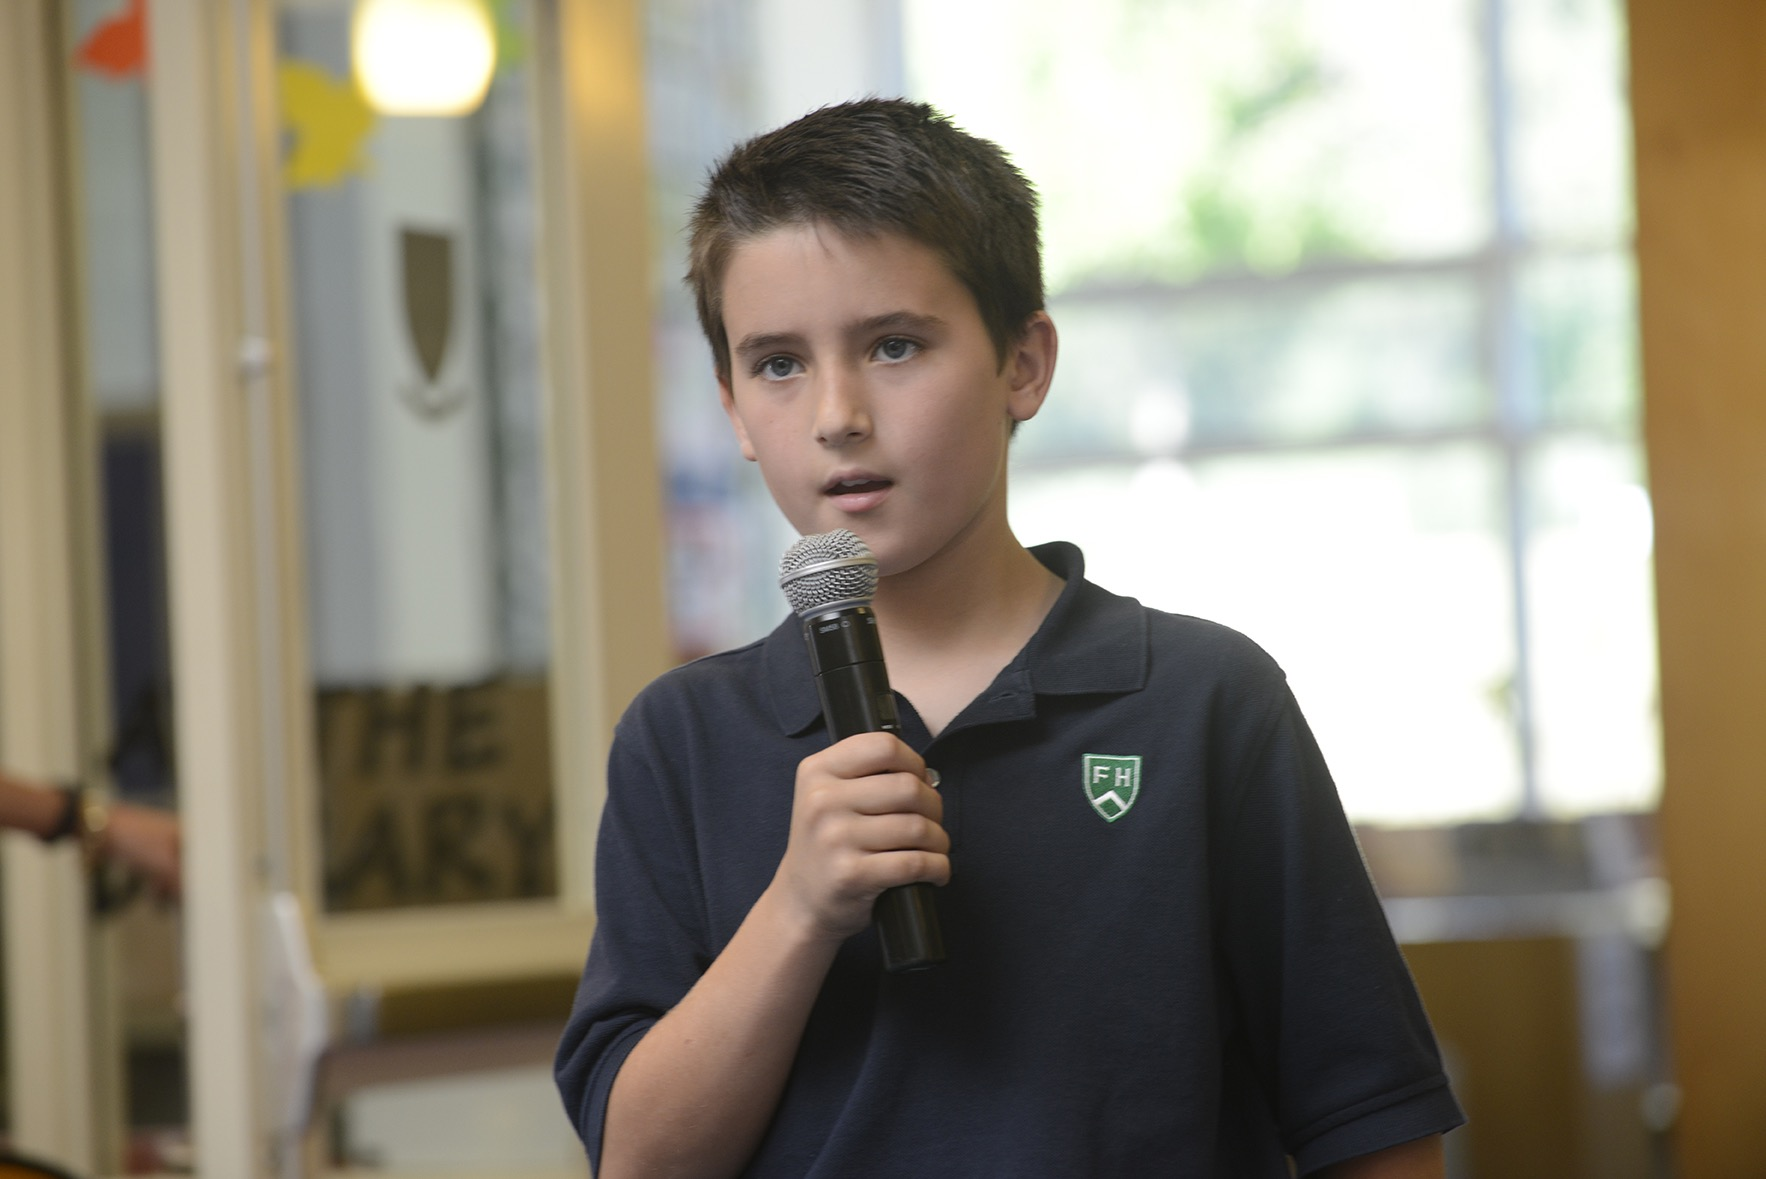 Boy holding microphone